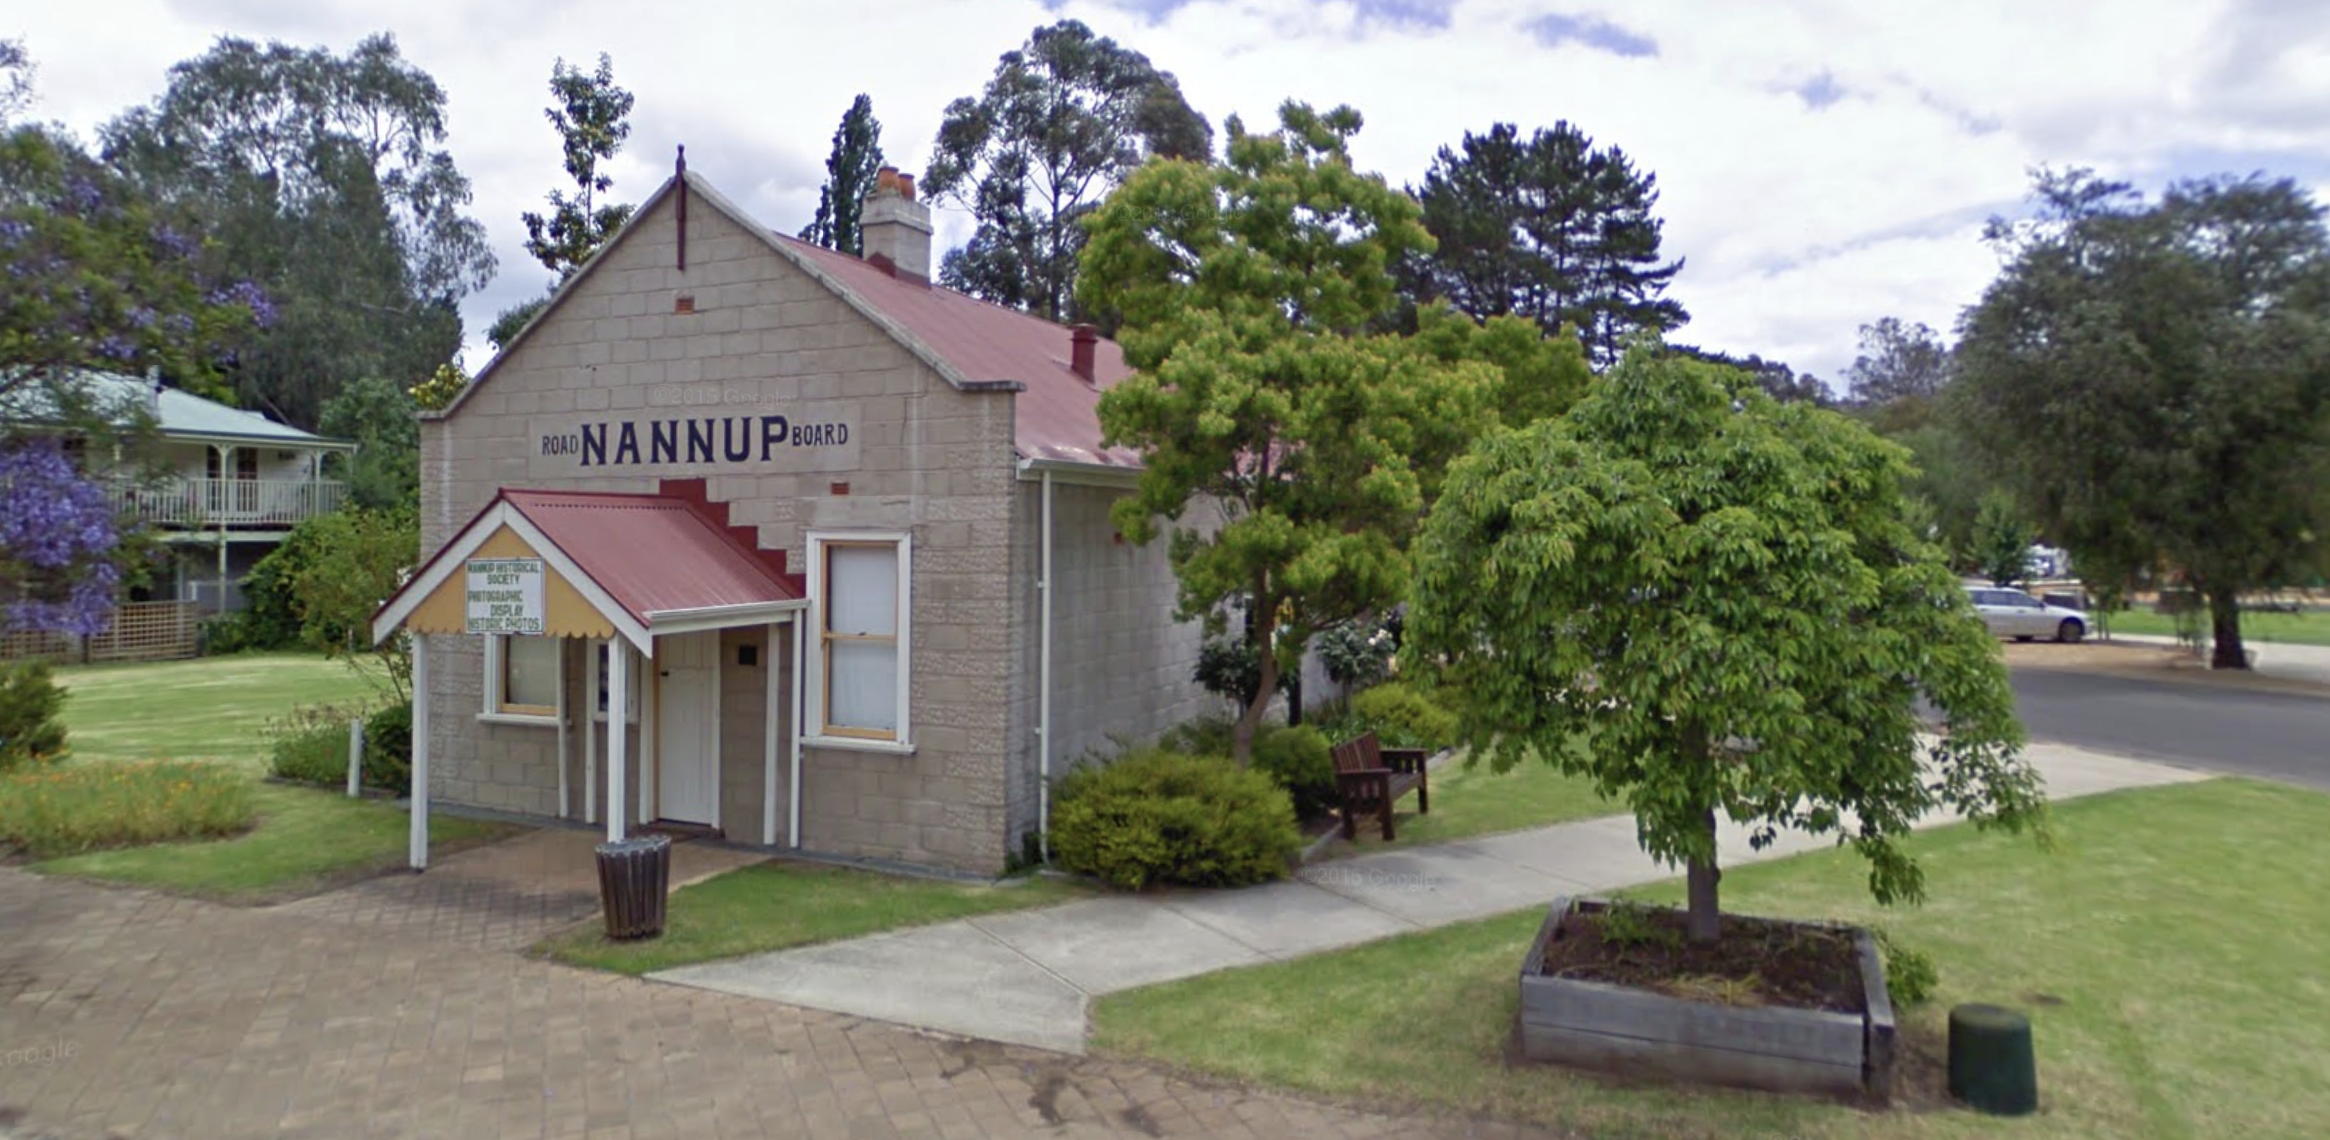 Nannup Historical Society building